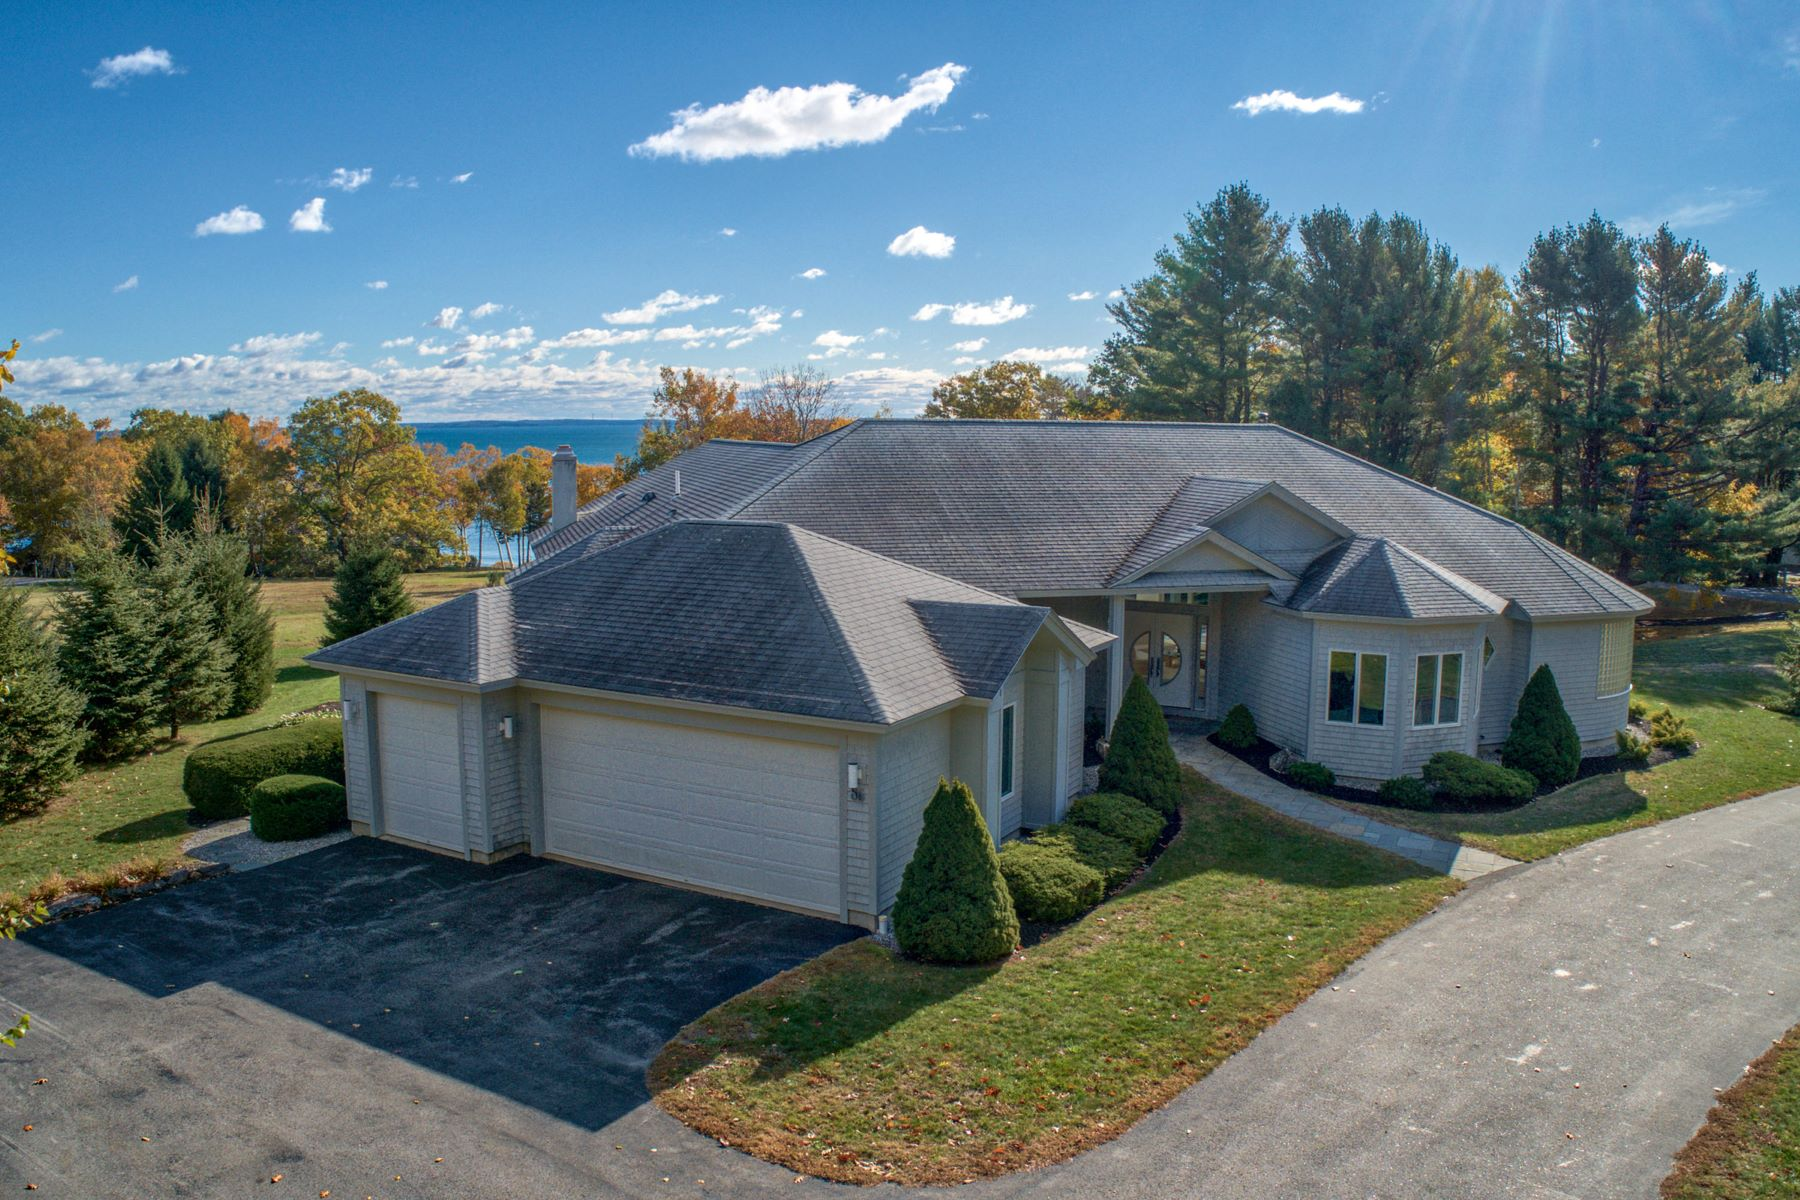 Single Family Homes for Sale at 86 Eastward On The Ocean Rockport, Maine 04856 United States